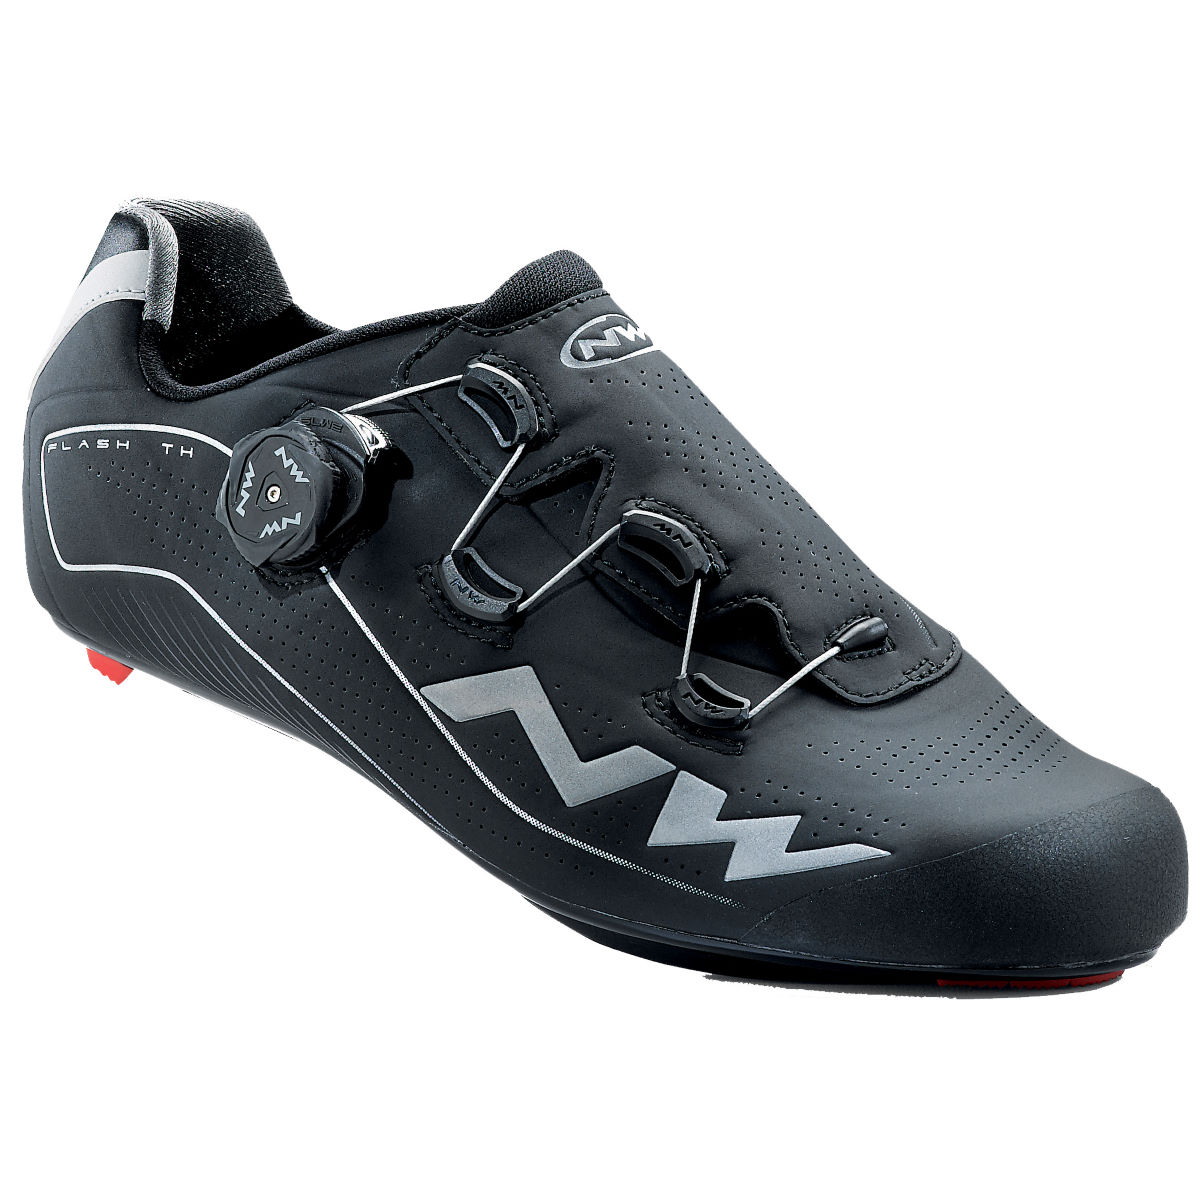 Northwave Northwave Flash TH Shoes   Cycling Shoes